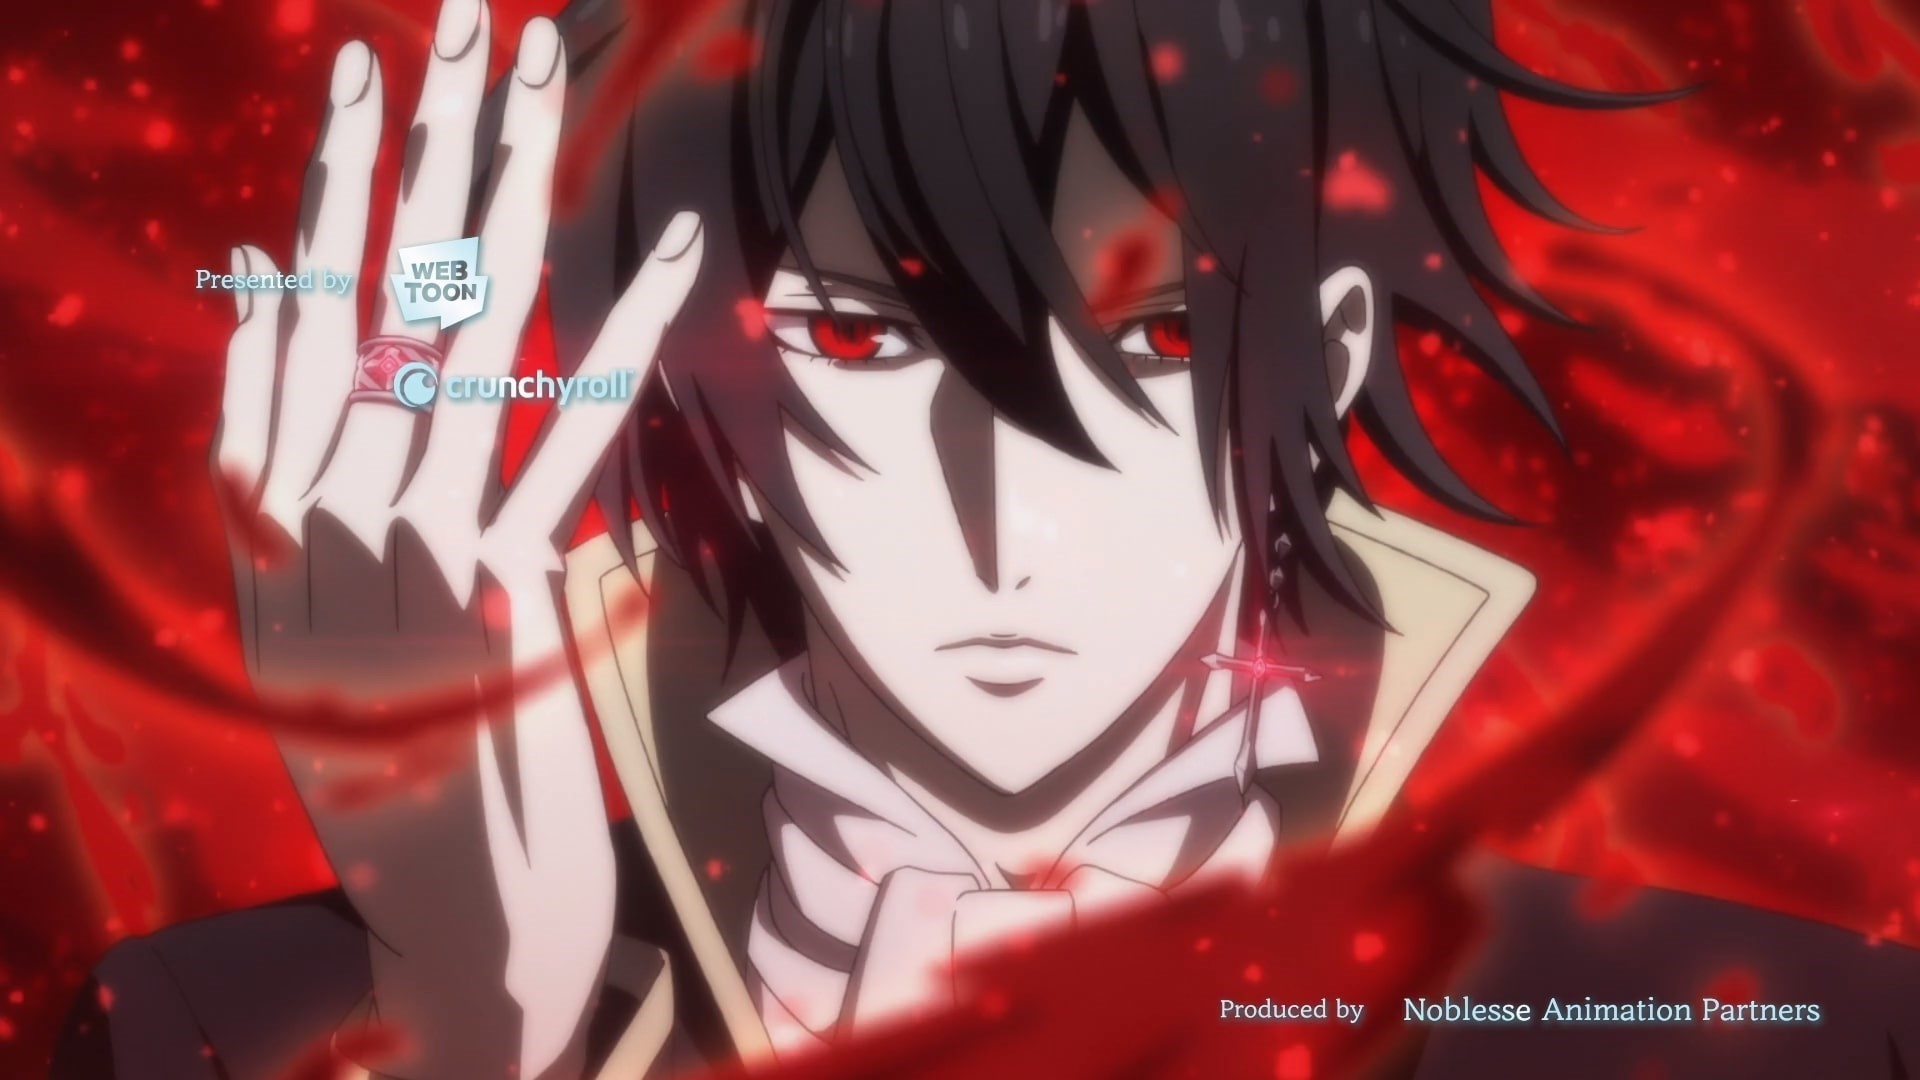 Noblesse: Episode 3 release date, spoilers & more